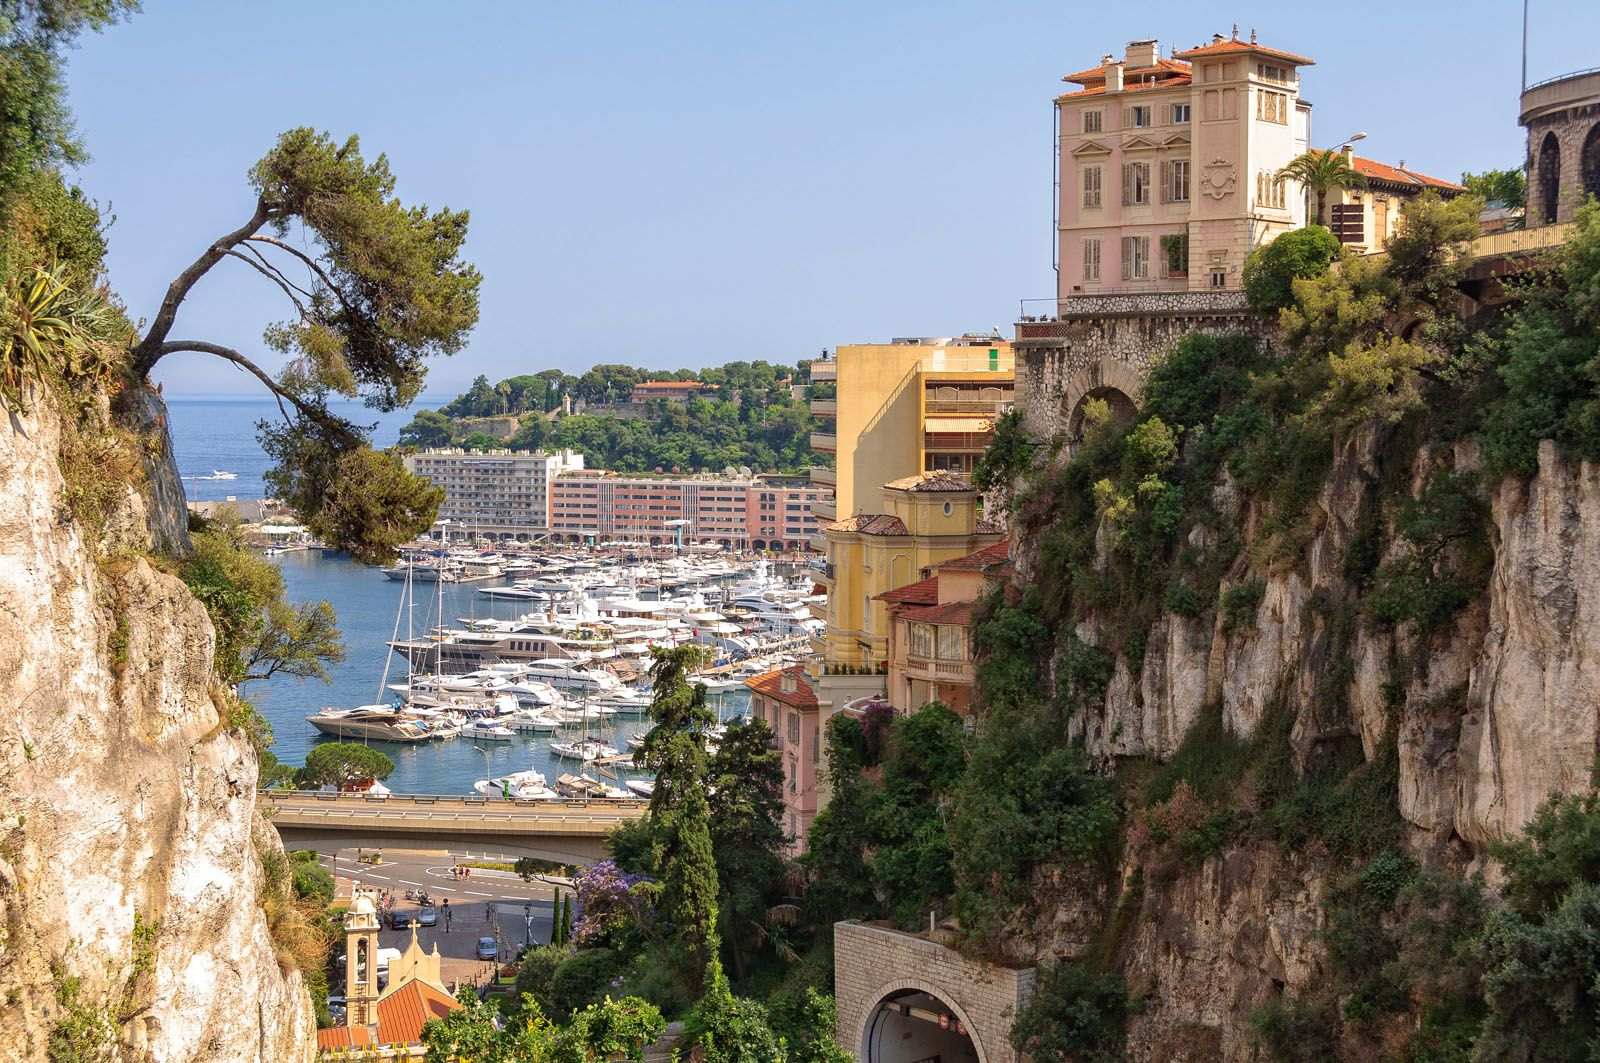 Port Hercules is home to the world's swankiest superyachts, but targeted policies ensure that it does not compromise the cleanliness of the waters surrounding the principality